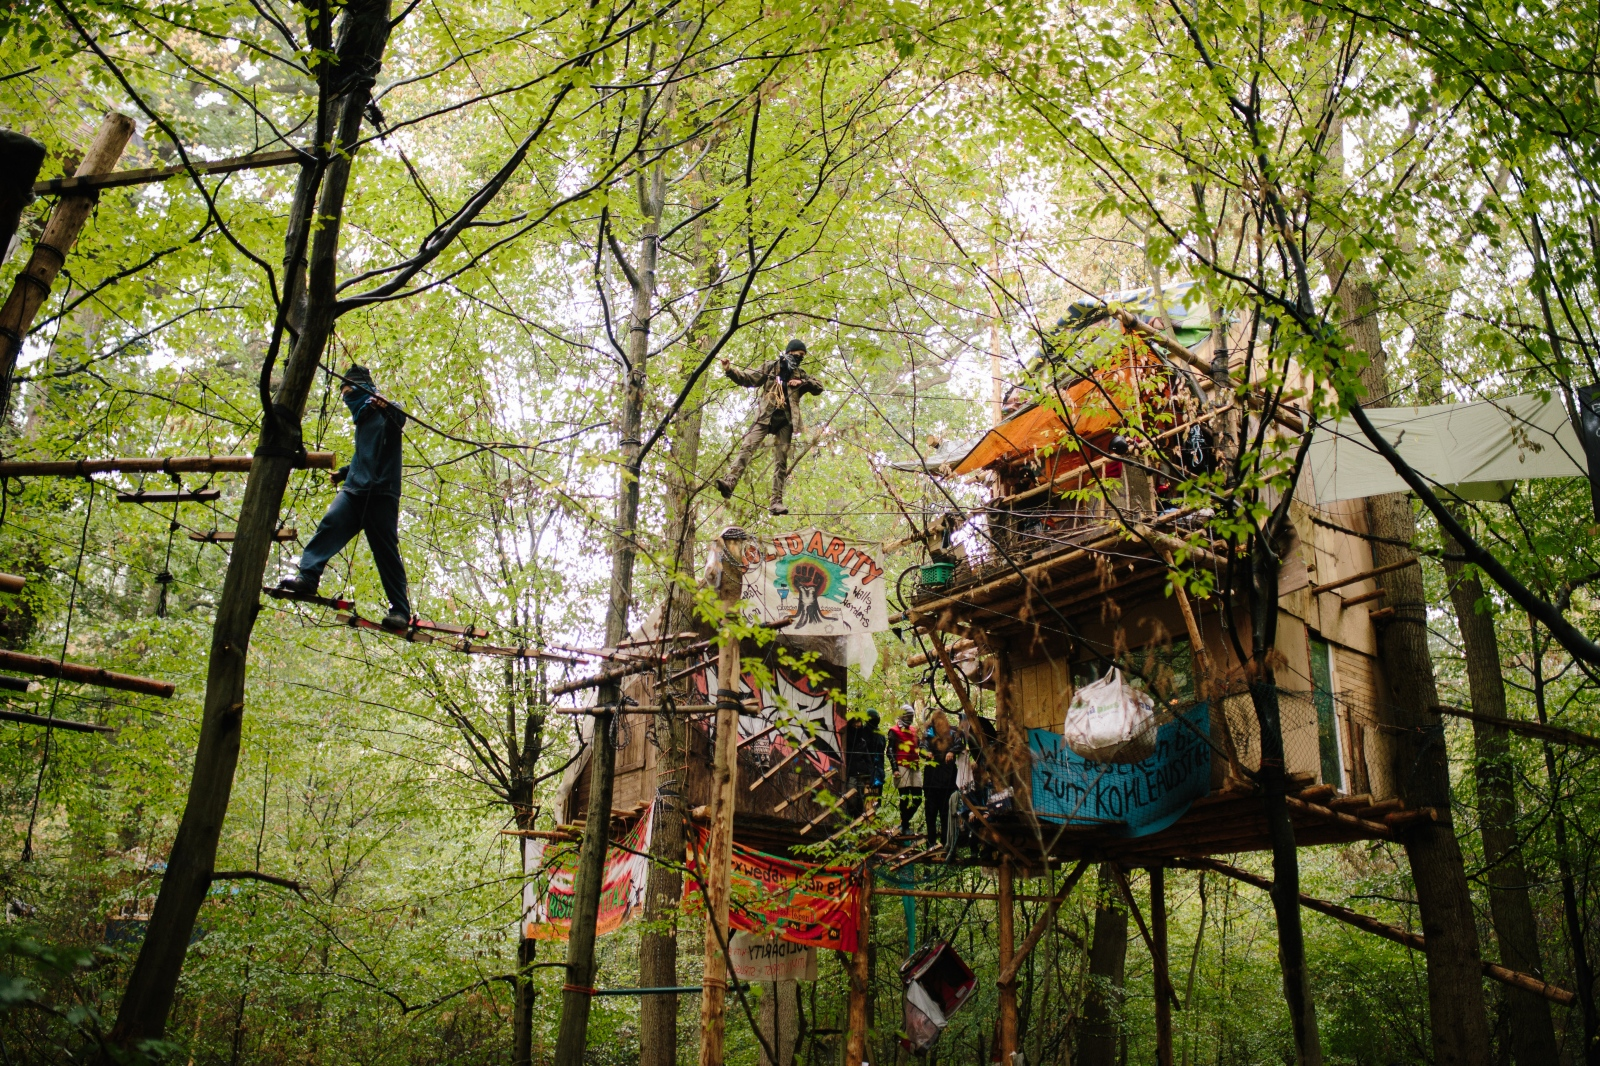 Activists and tree houses at Hambach Forest occupation. 09-13-2018